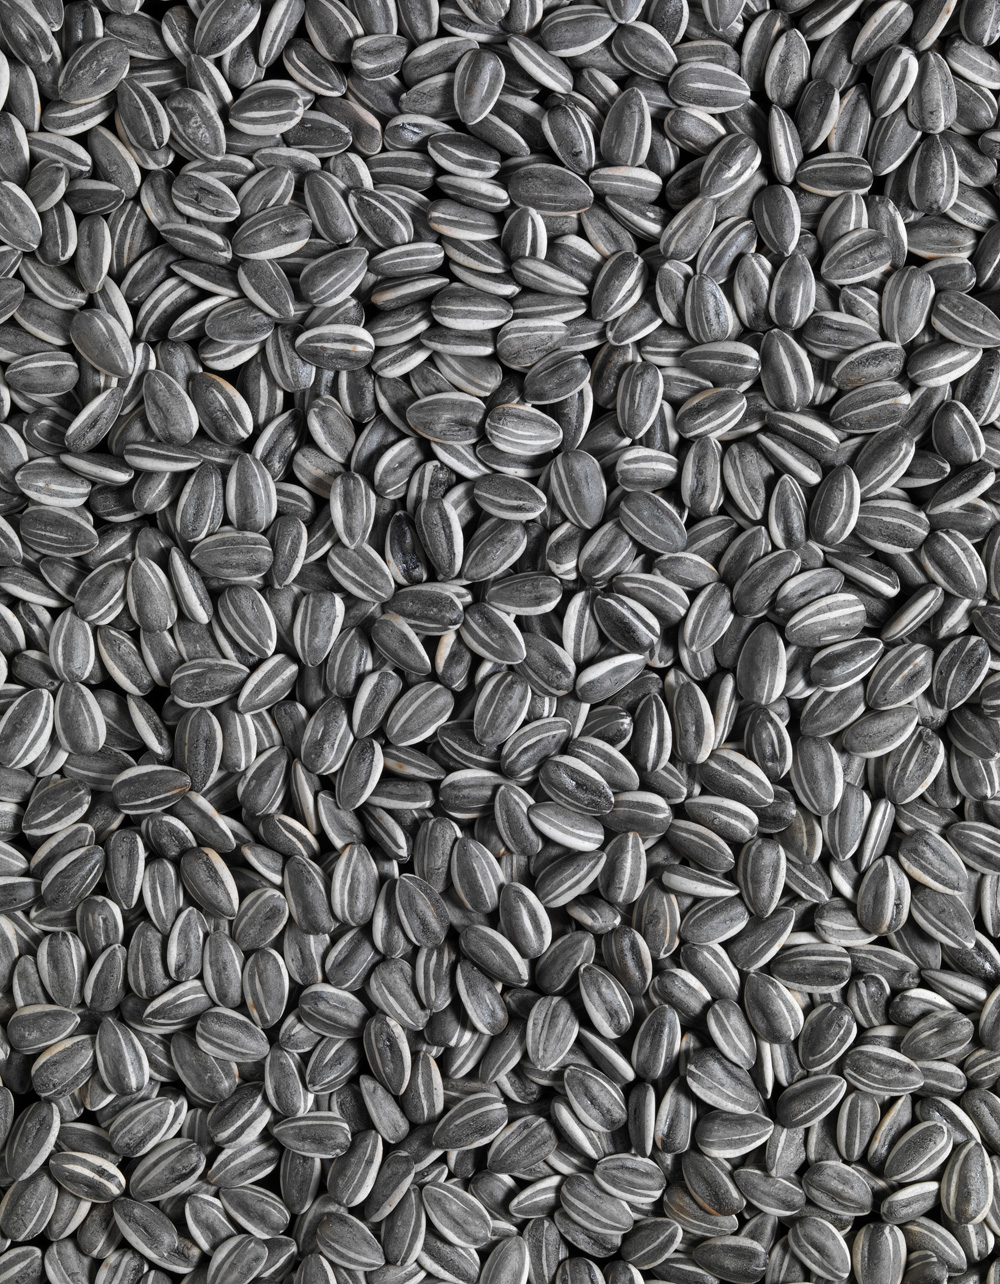 AWW_SunflowerSeeds_PhotoCreditTate1_2010.jpg